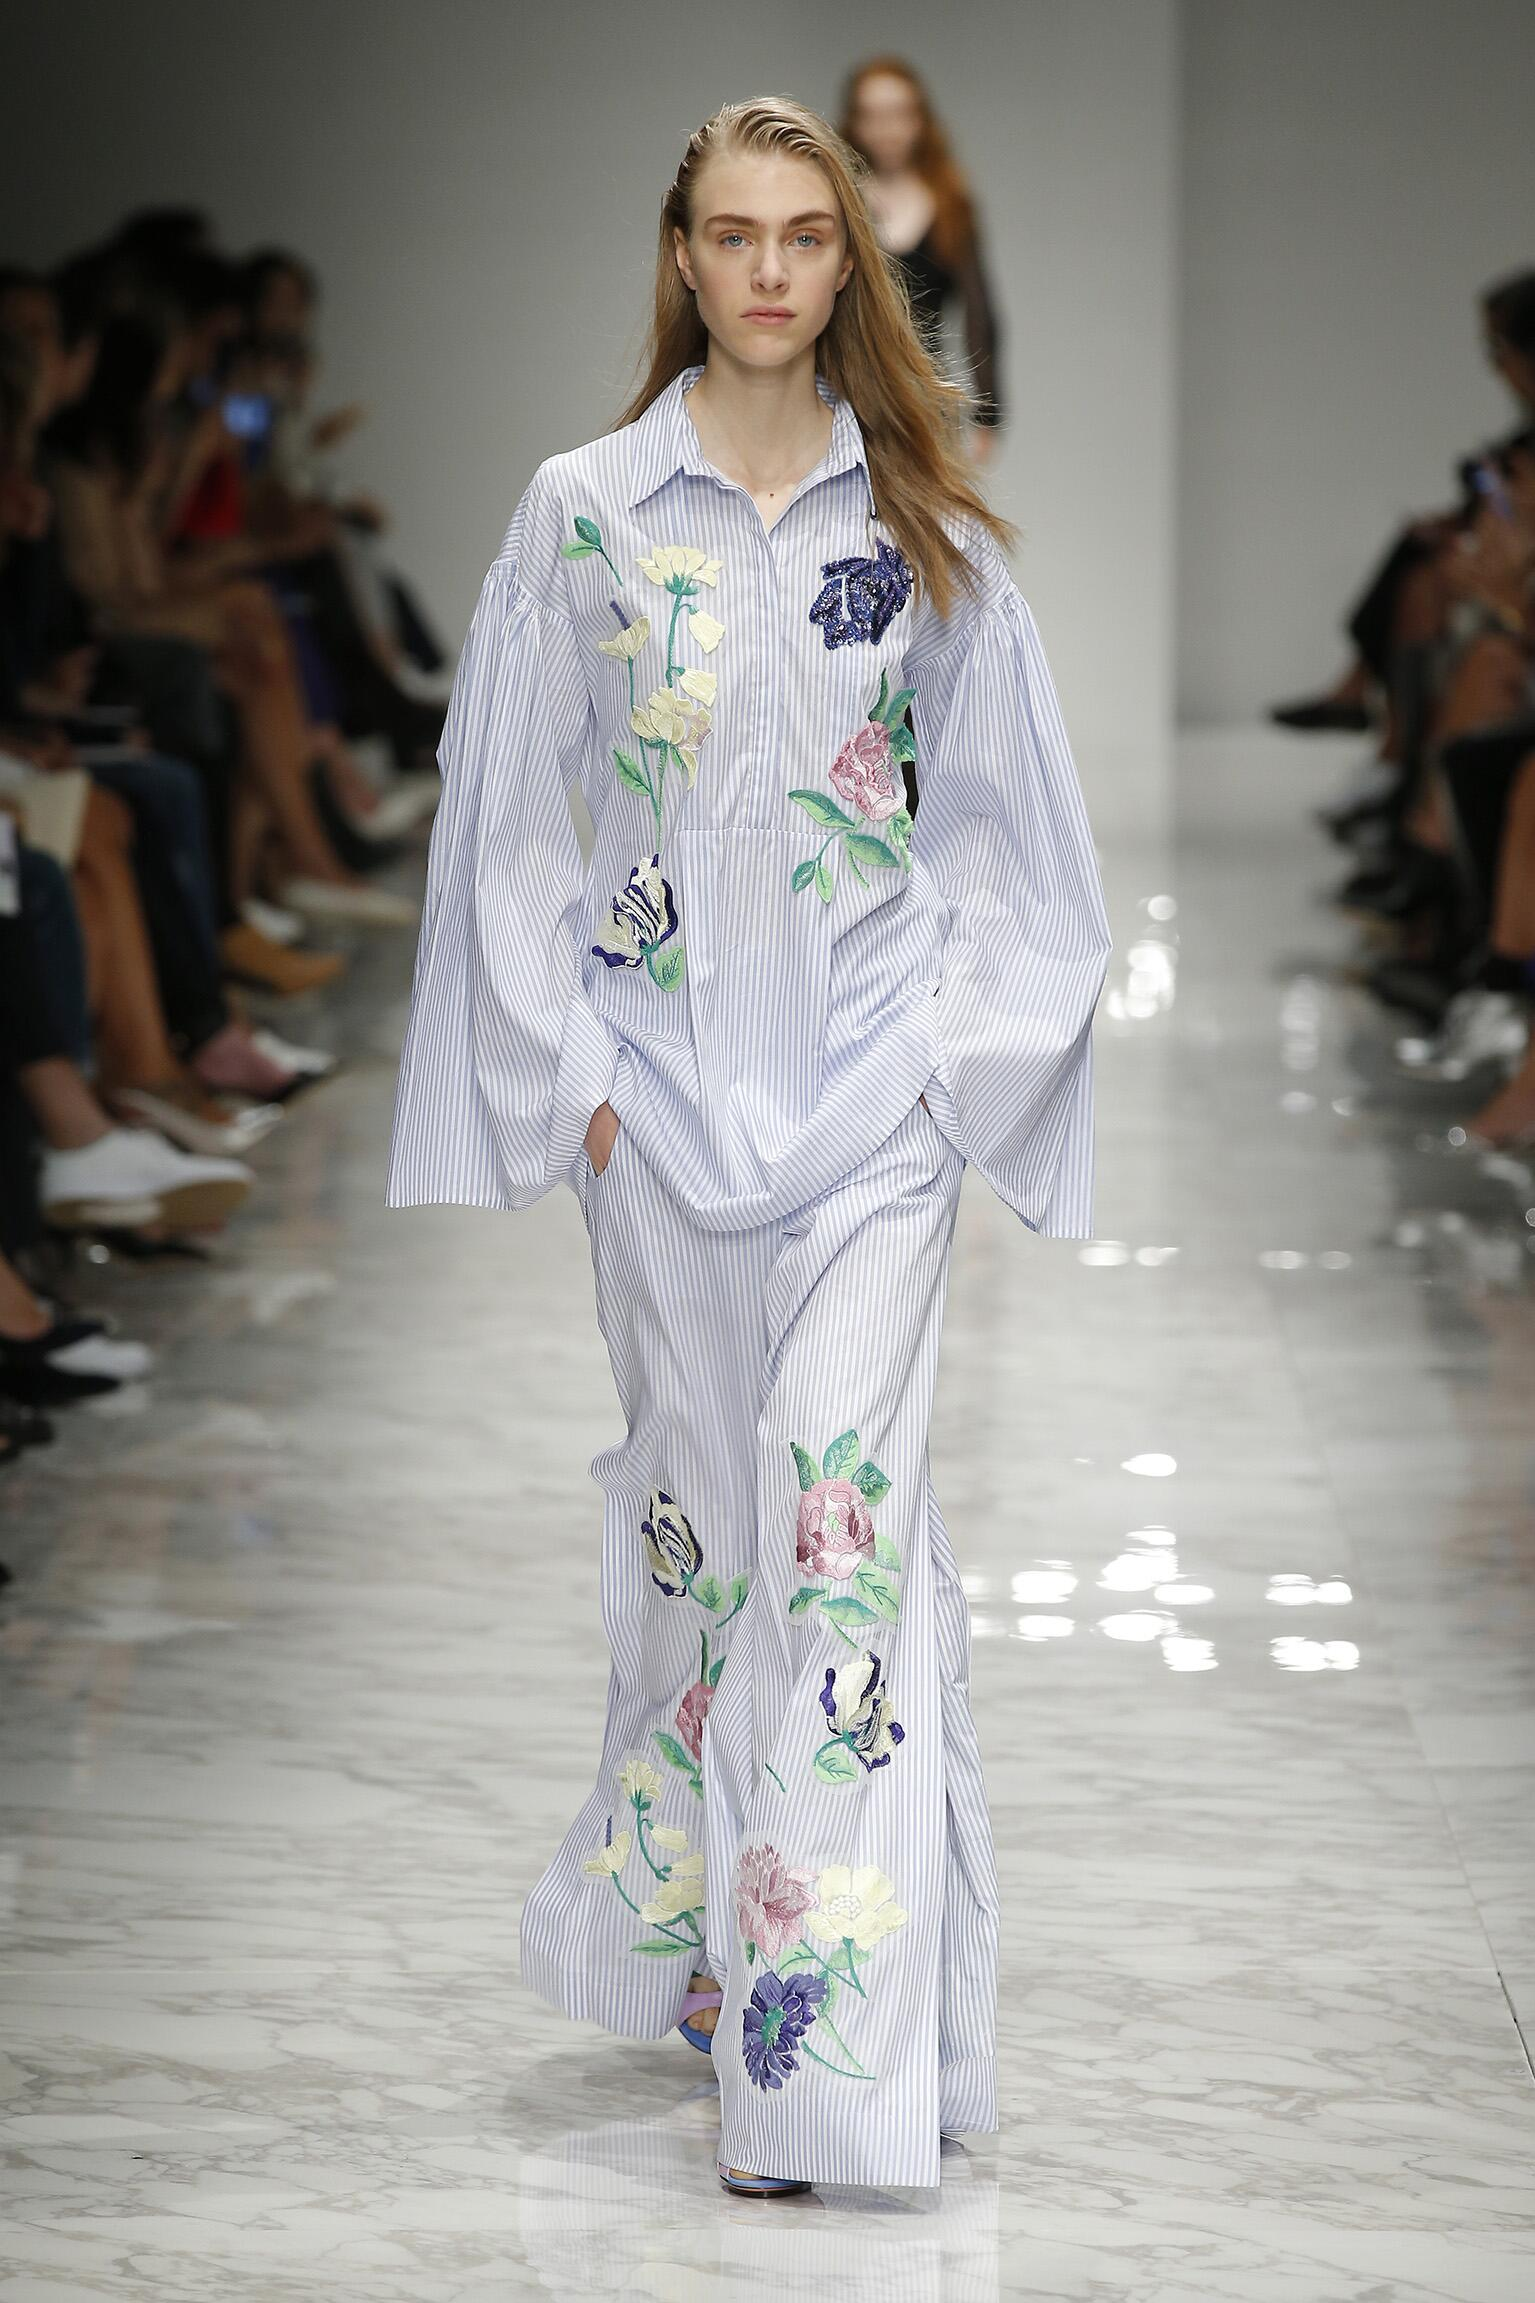 BLUMARINE SPRING SUMMER 2016 WOMEN'S COLLECTION